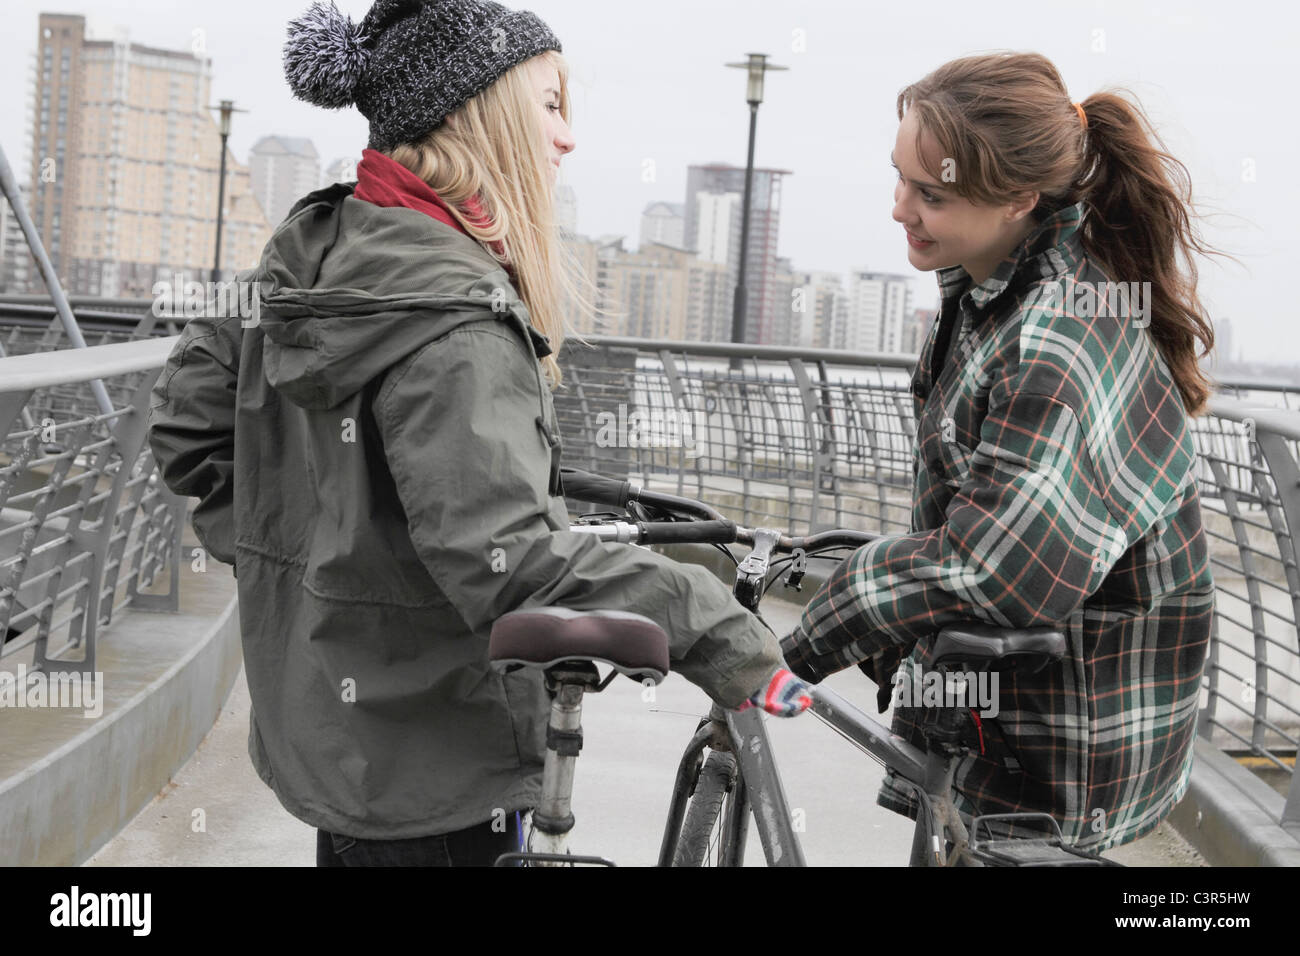 2 young women chatting with push bikes - Stock Image